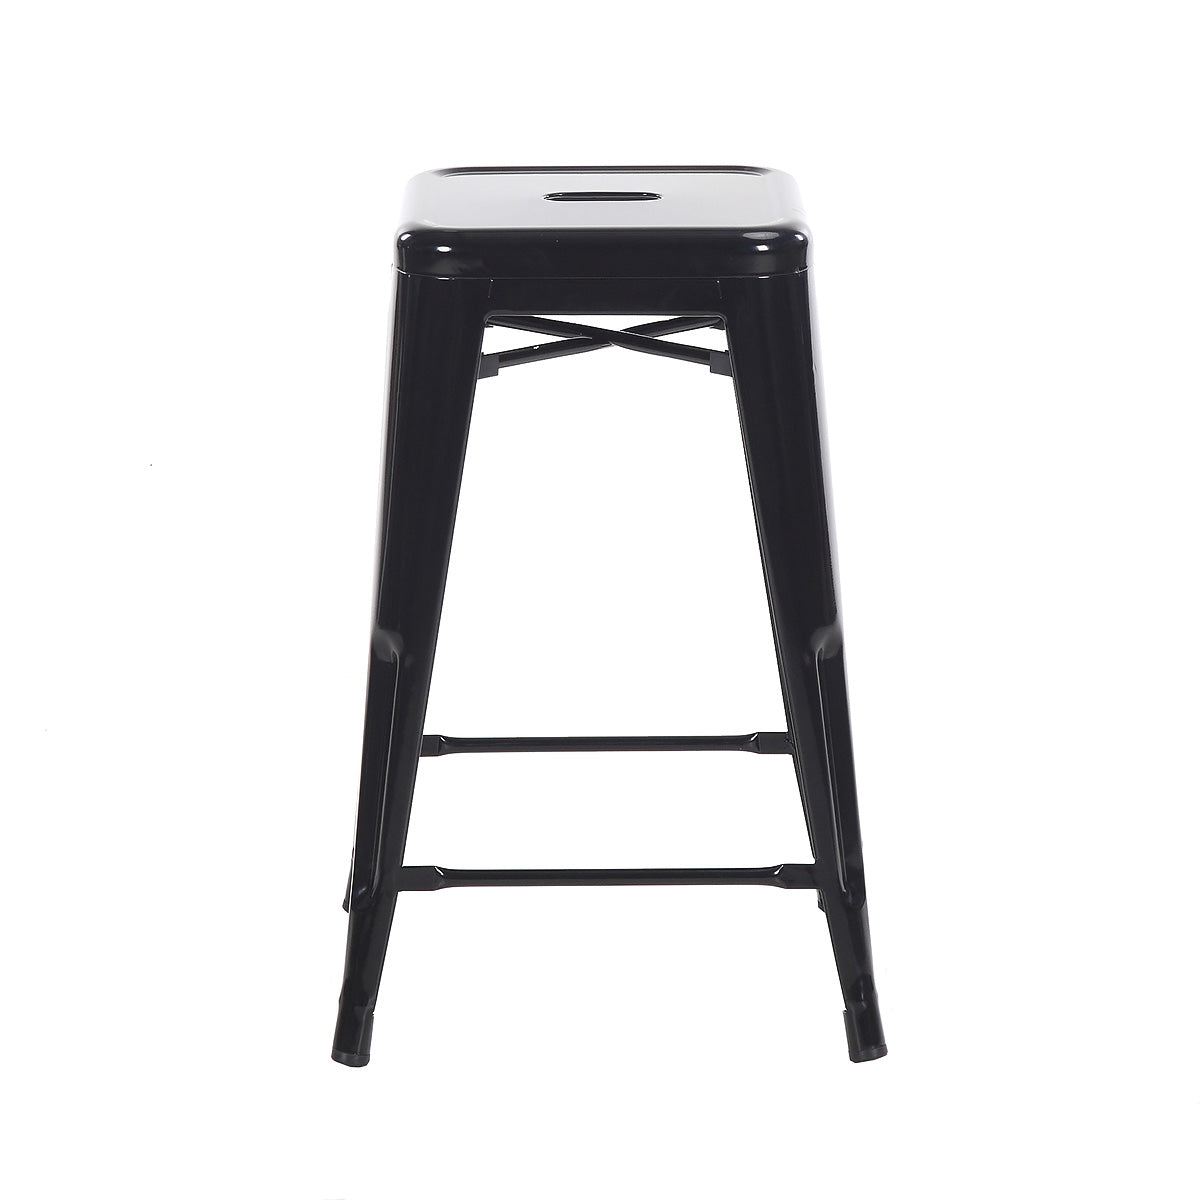 "Buschman Metal Bar Stools 24"" Counter Height, Indoor/Outdoor and Stackable, Set of 2 (Black)"